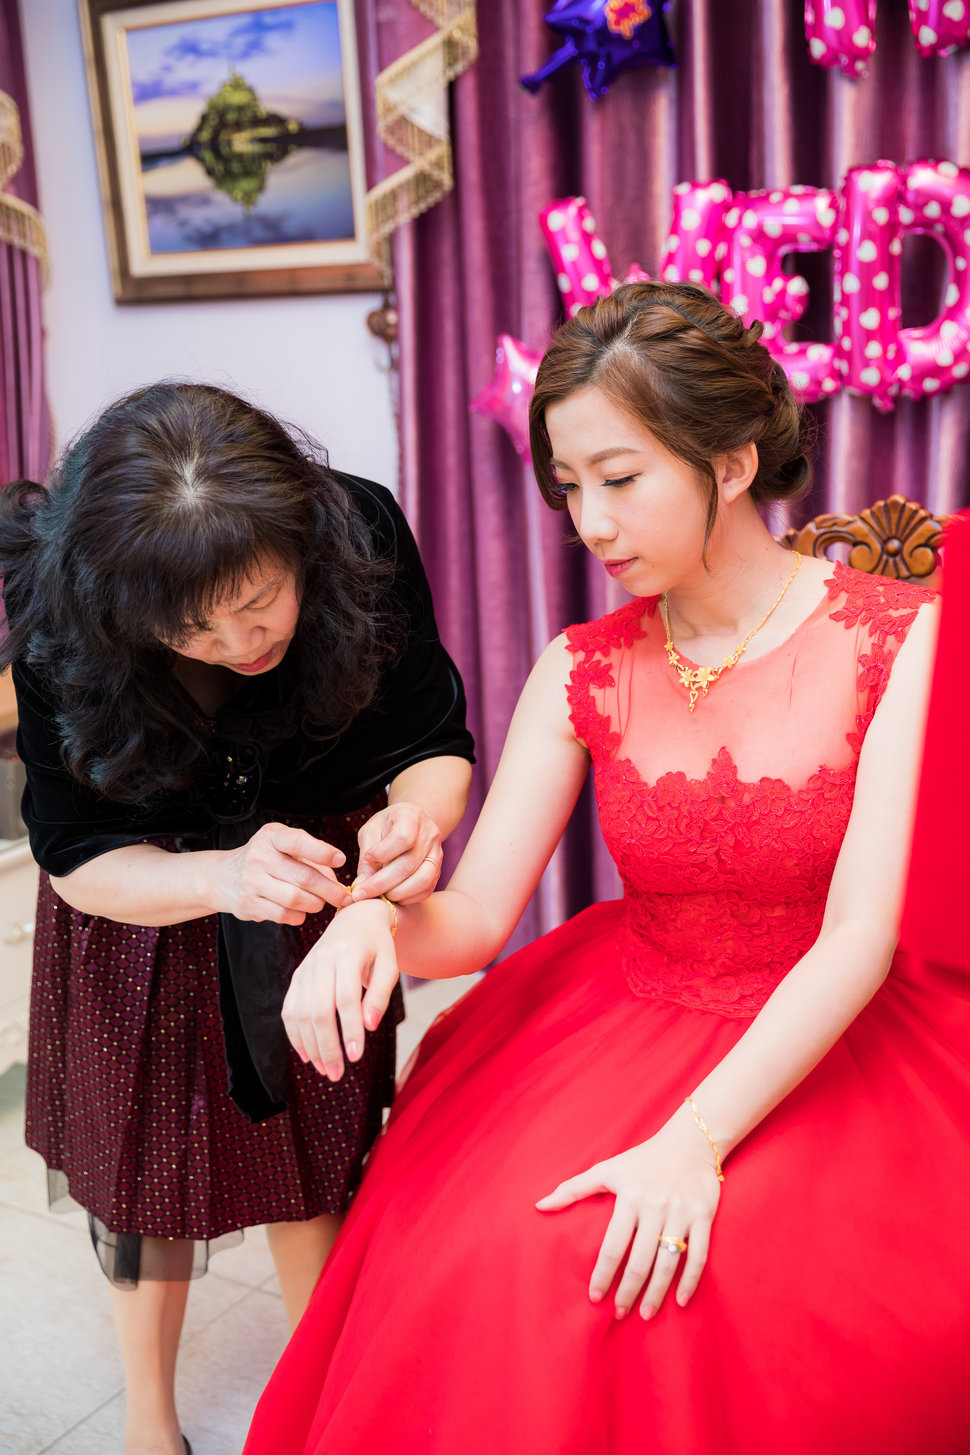 15 - Wei Photography - 結婚吧